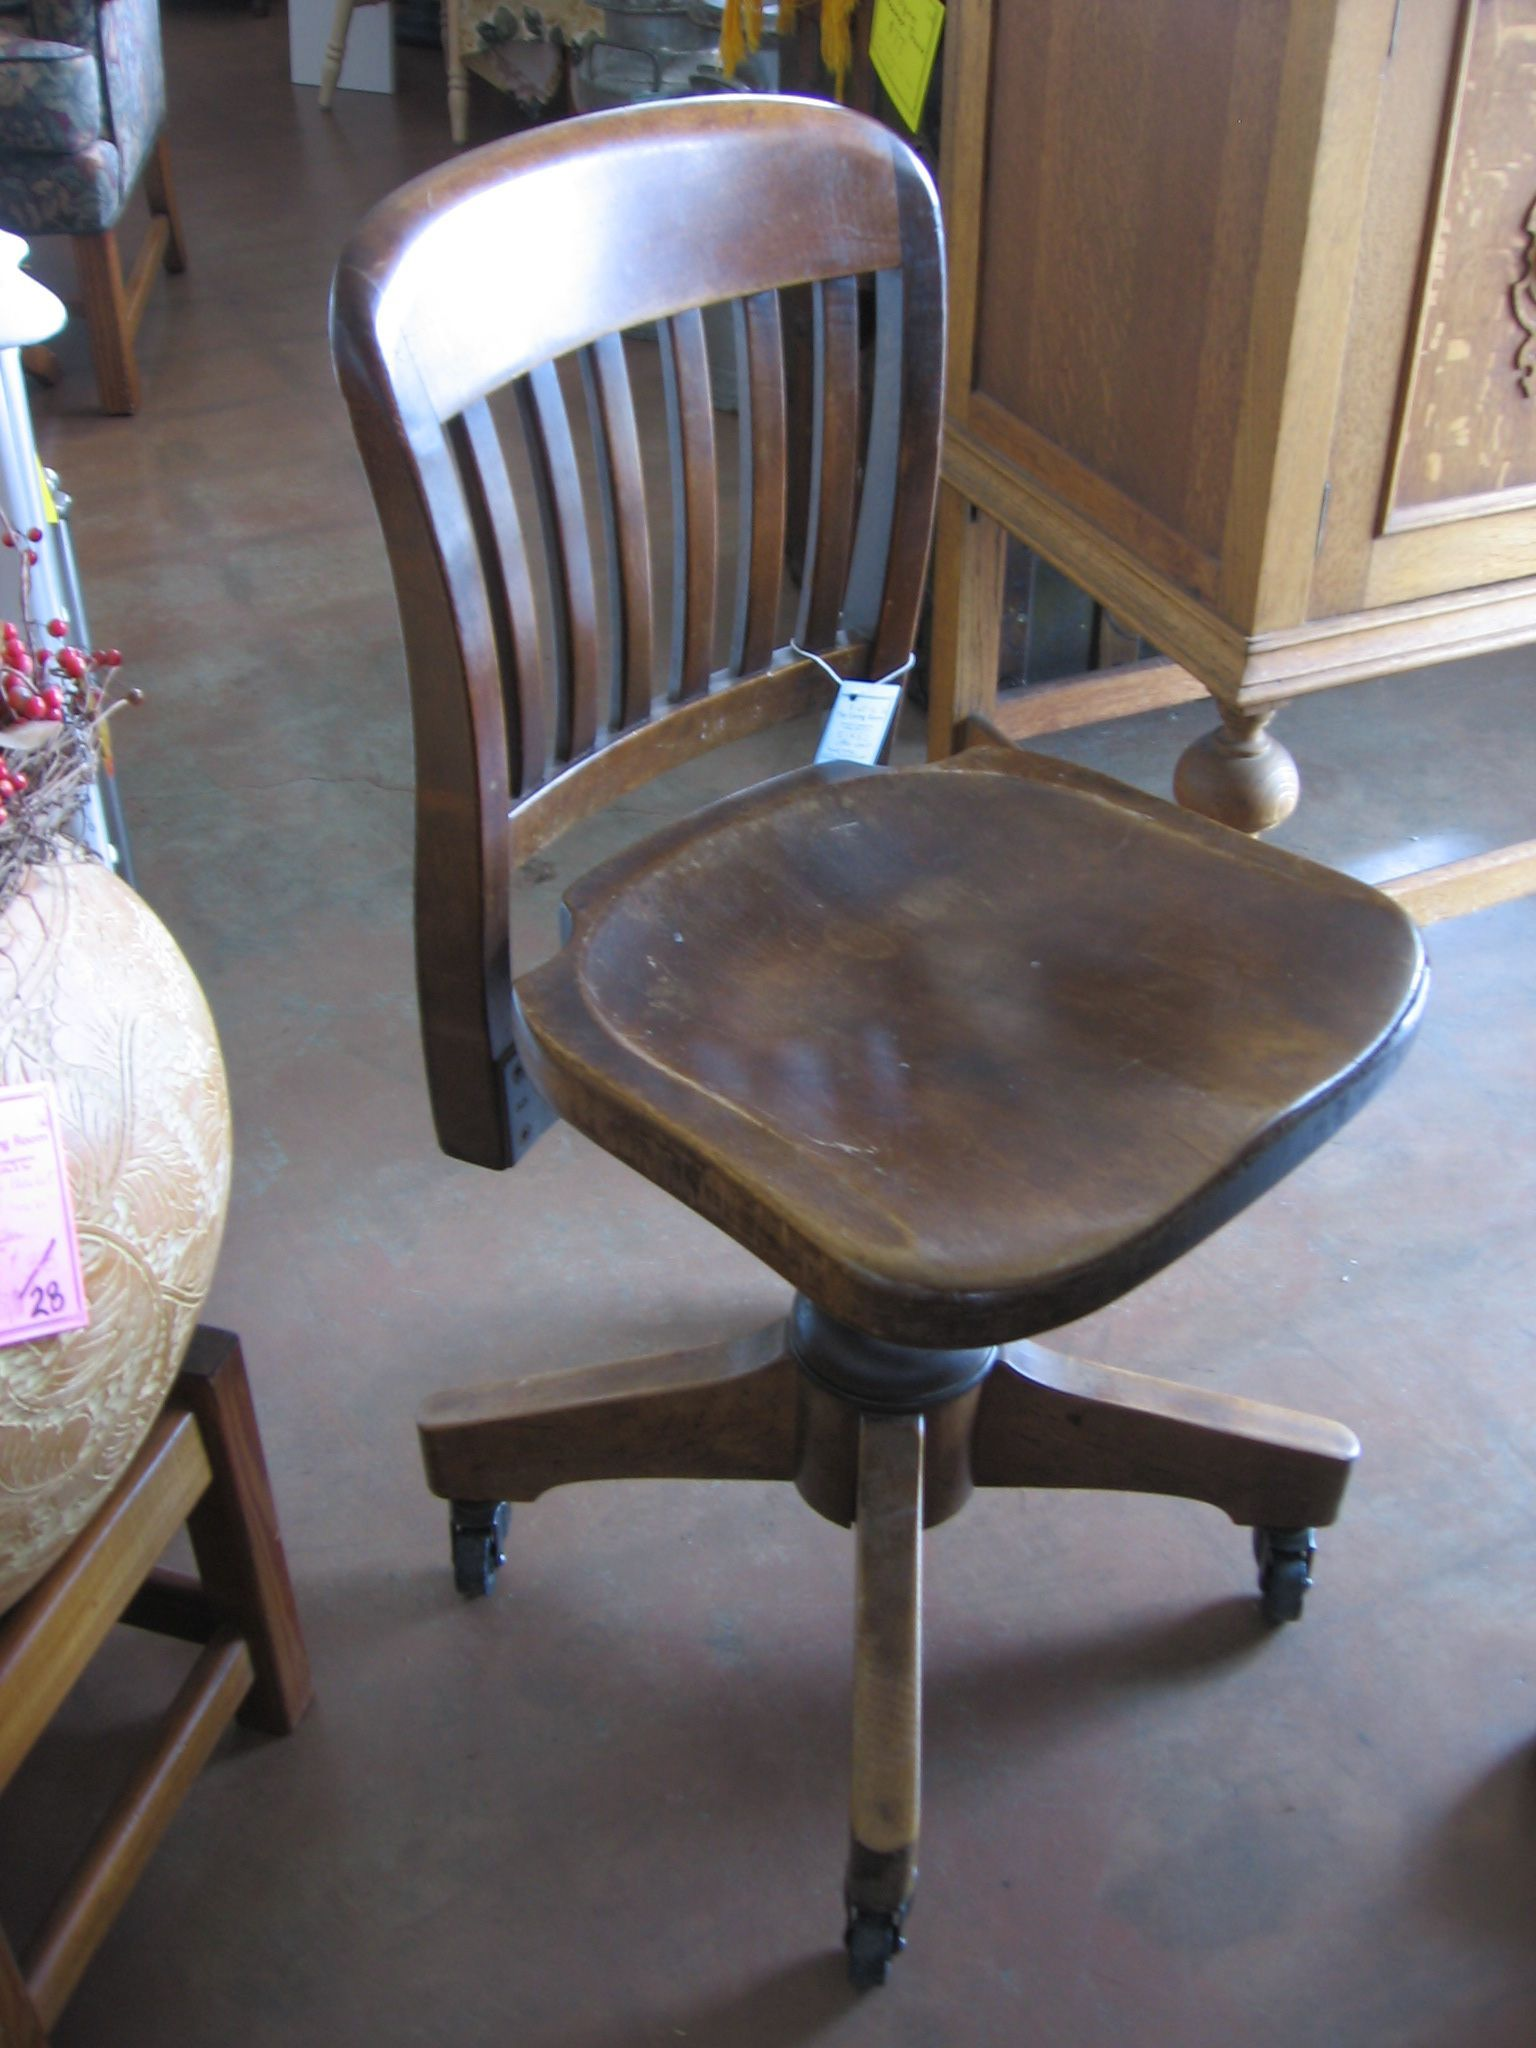 Antique Desk Chairs for Sale - Diy Stand Up Desk Check more at  http://www.sewcraftyjenn.com/antique-desk-chairs-for-sale/ - Antique Desk Chairs For Sale - Diy Stand Up Desk Check More At Http